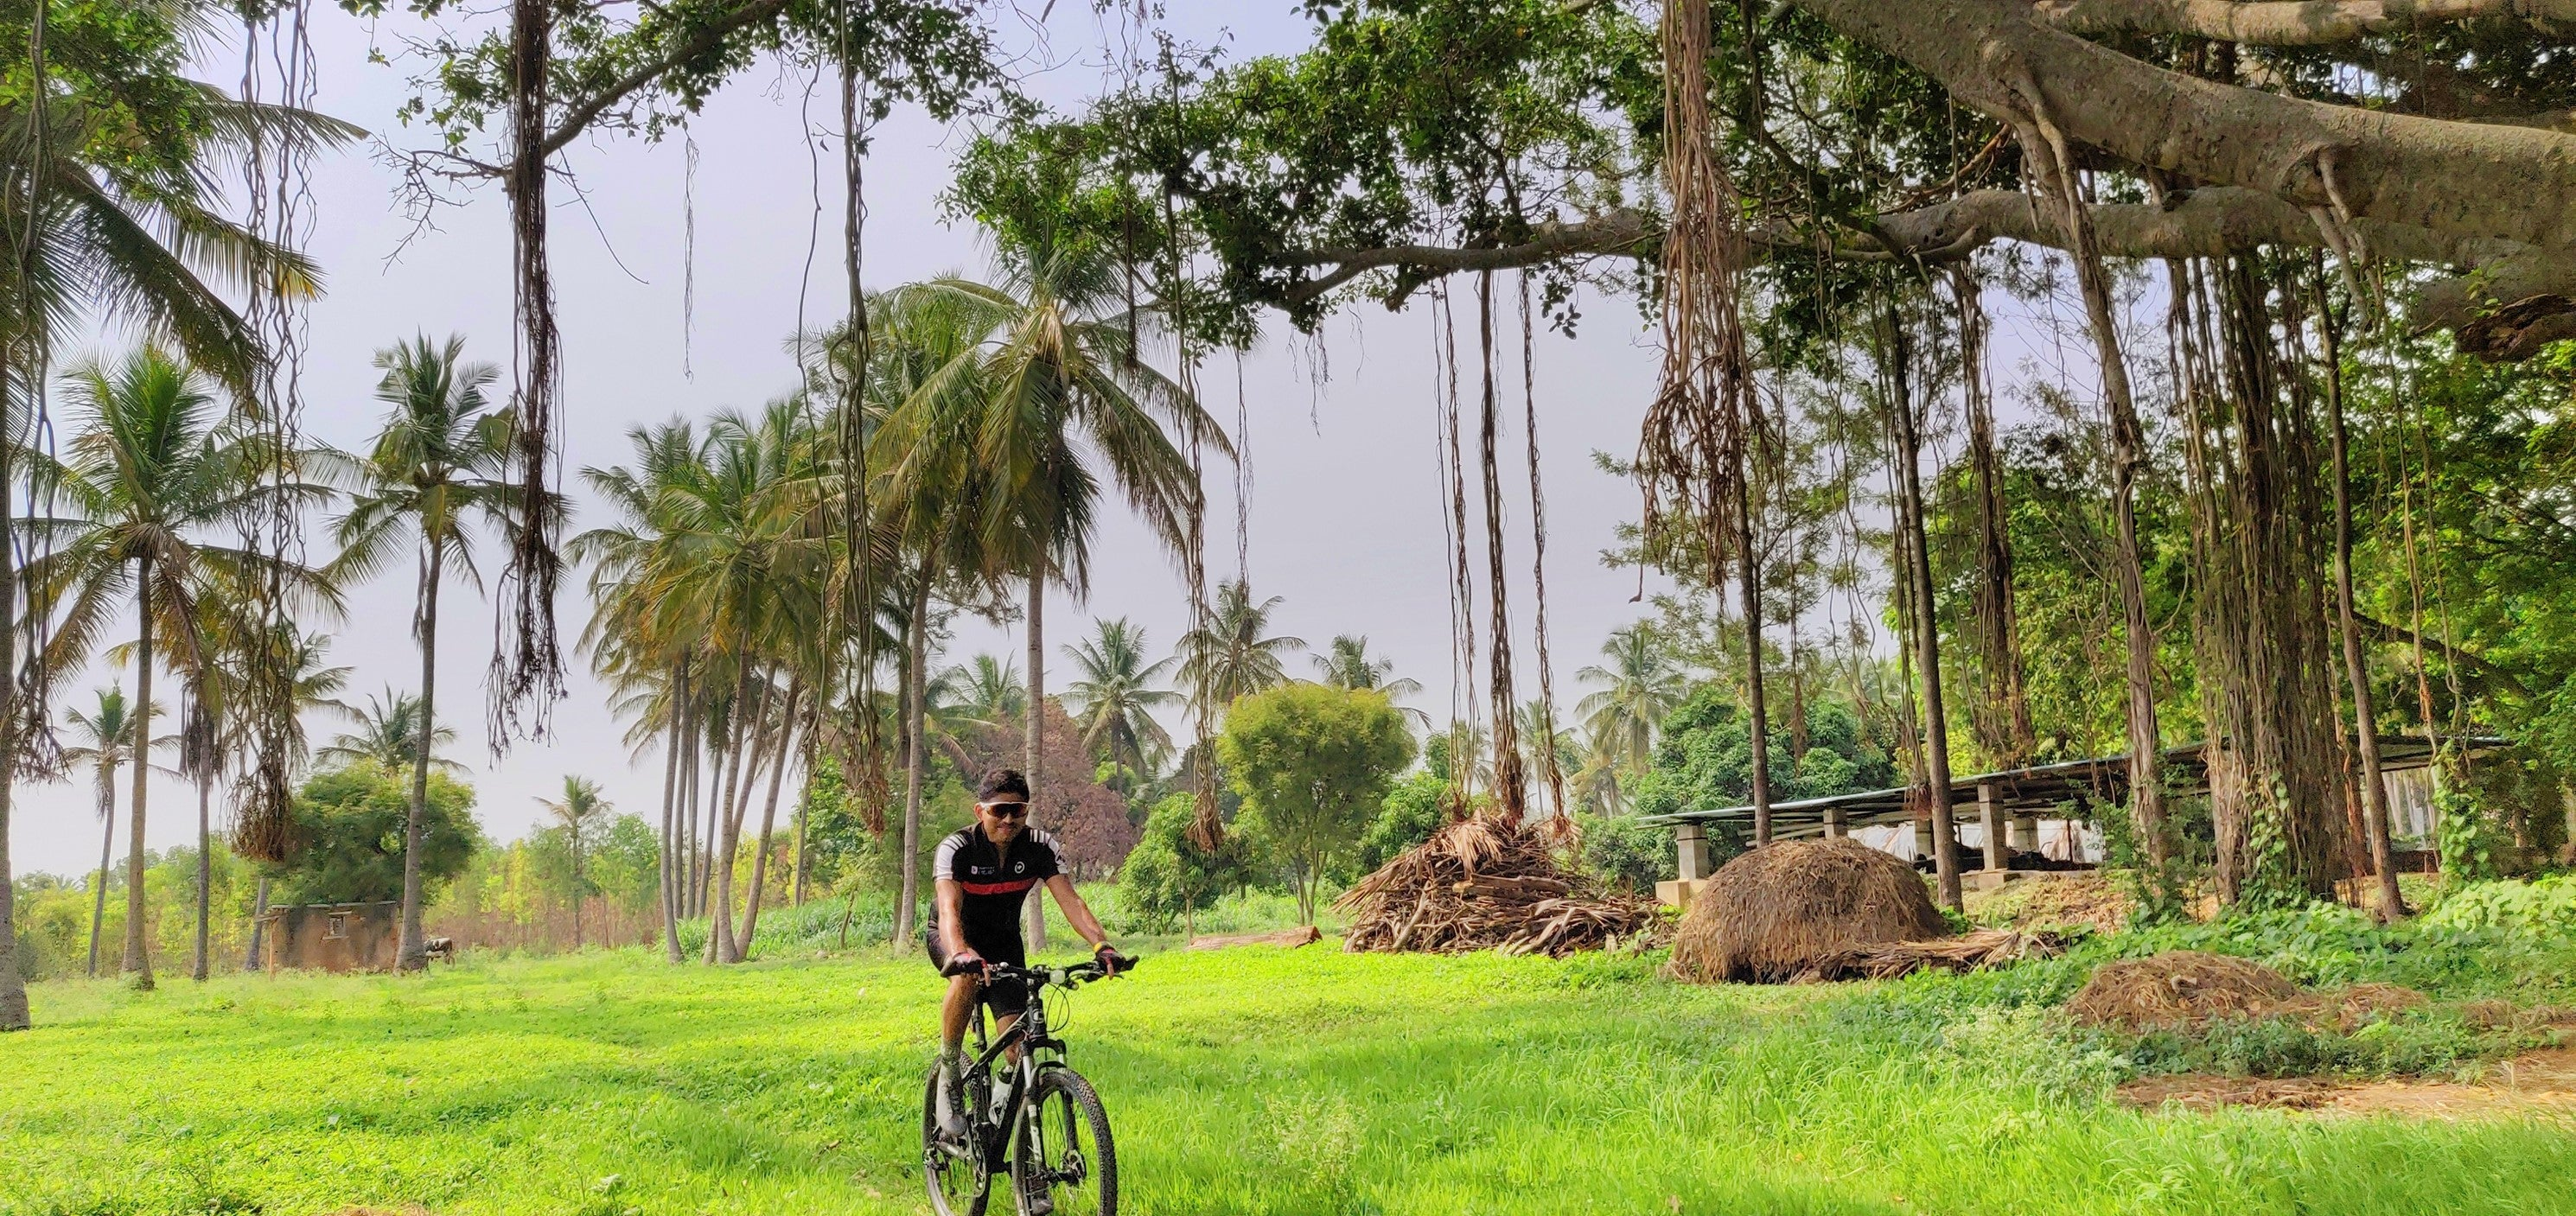 Biju Kunnappada on his cycling group in Bengaluru - Bangalore Roadsters weekend cycling ride to villages around Bengaluru